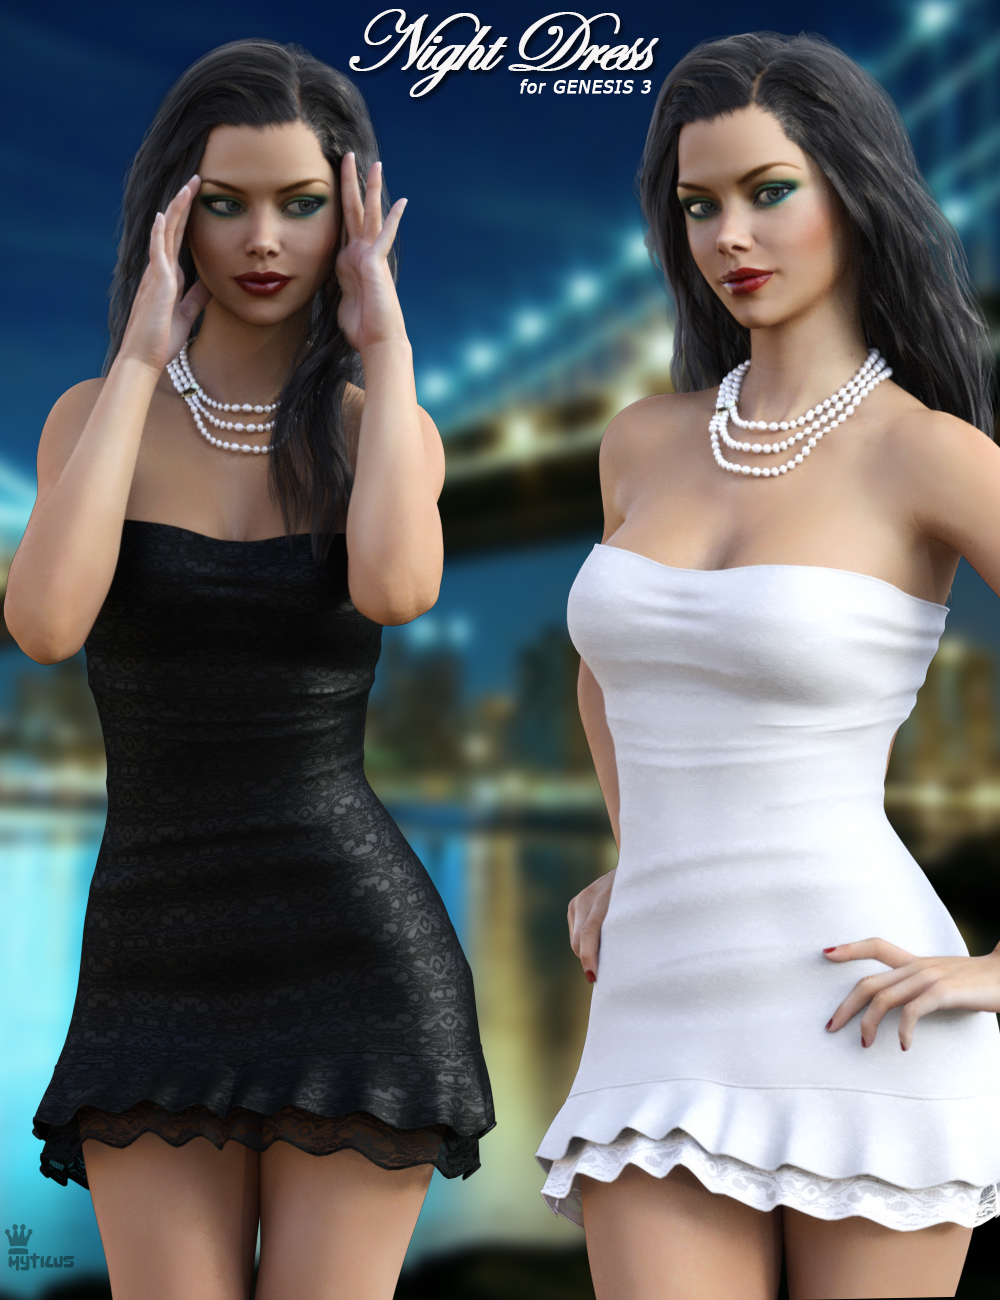 Night Dress For Genesis 3